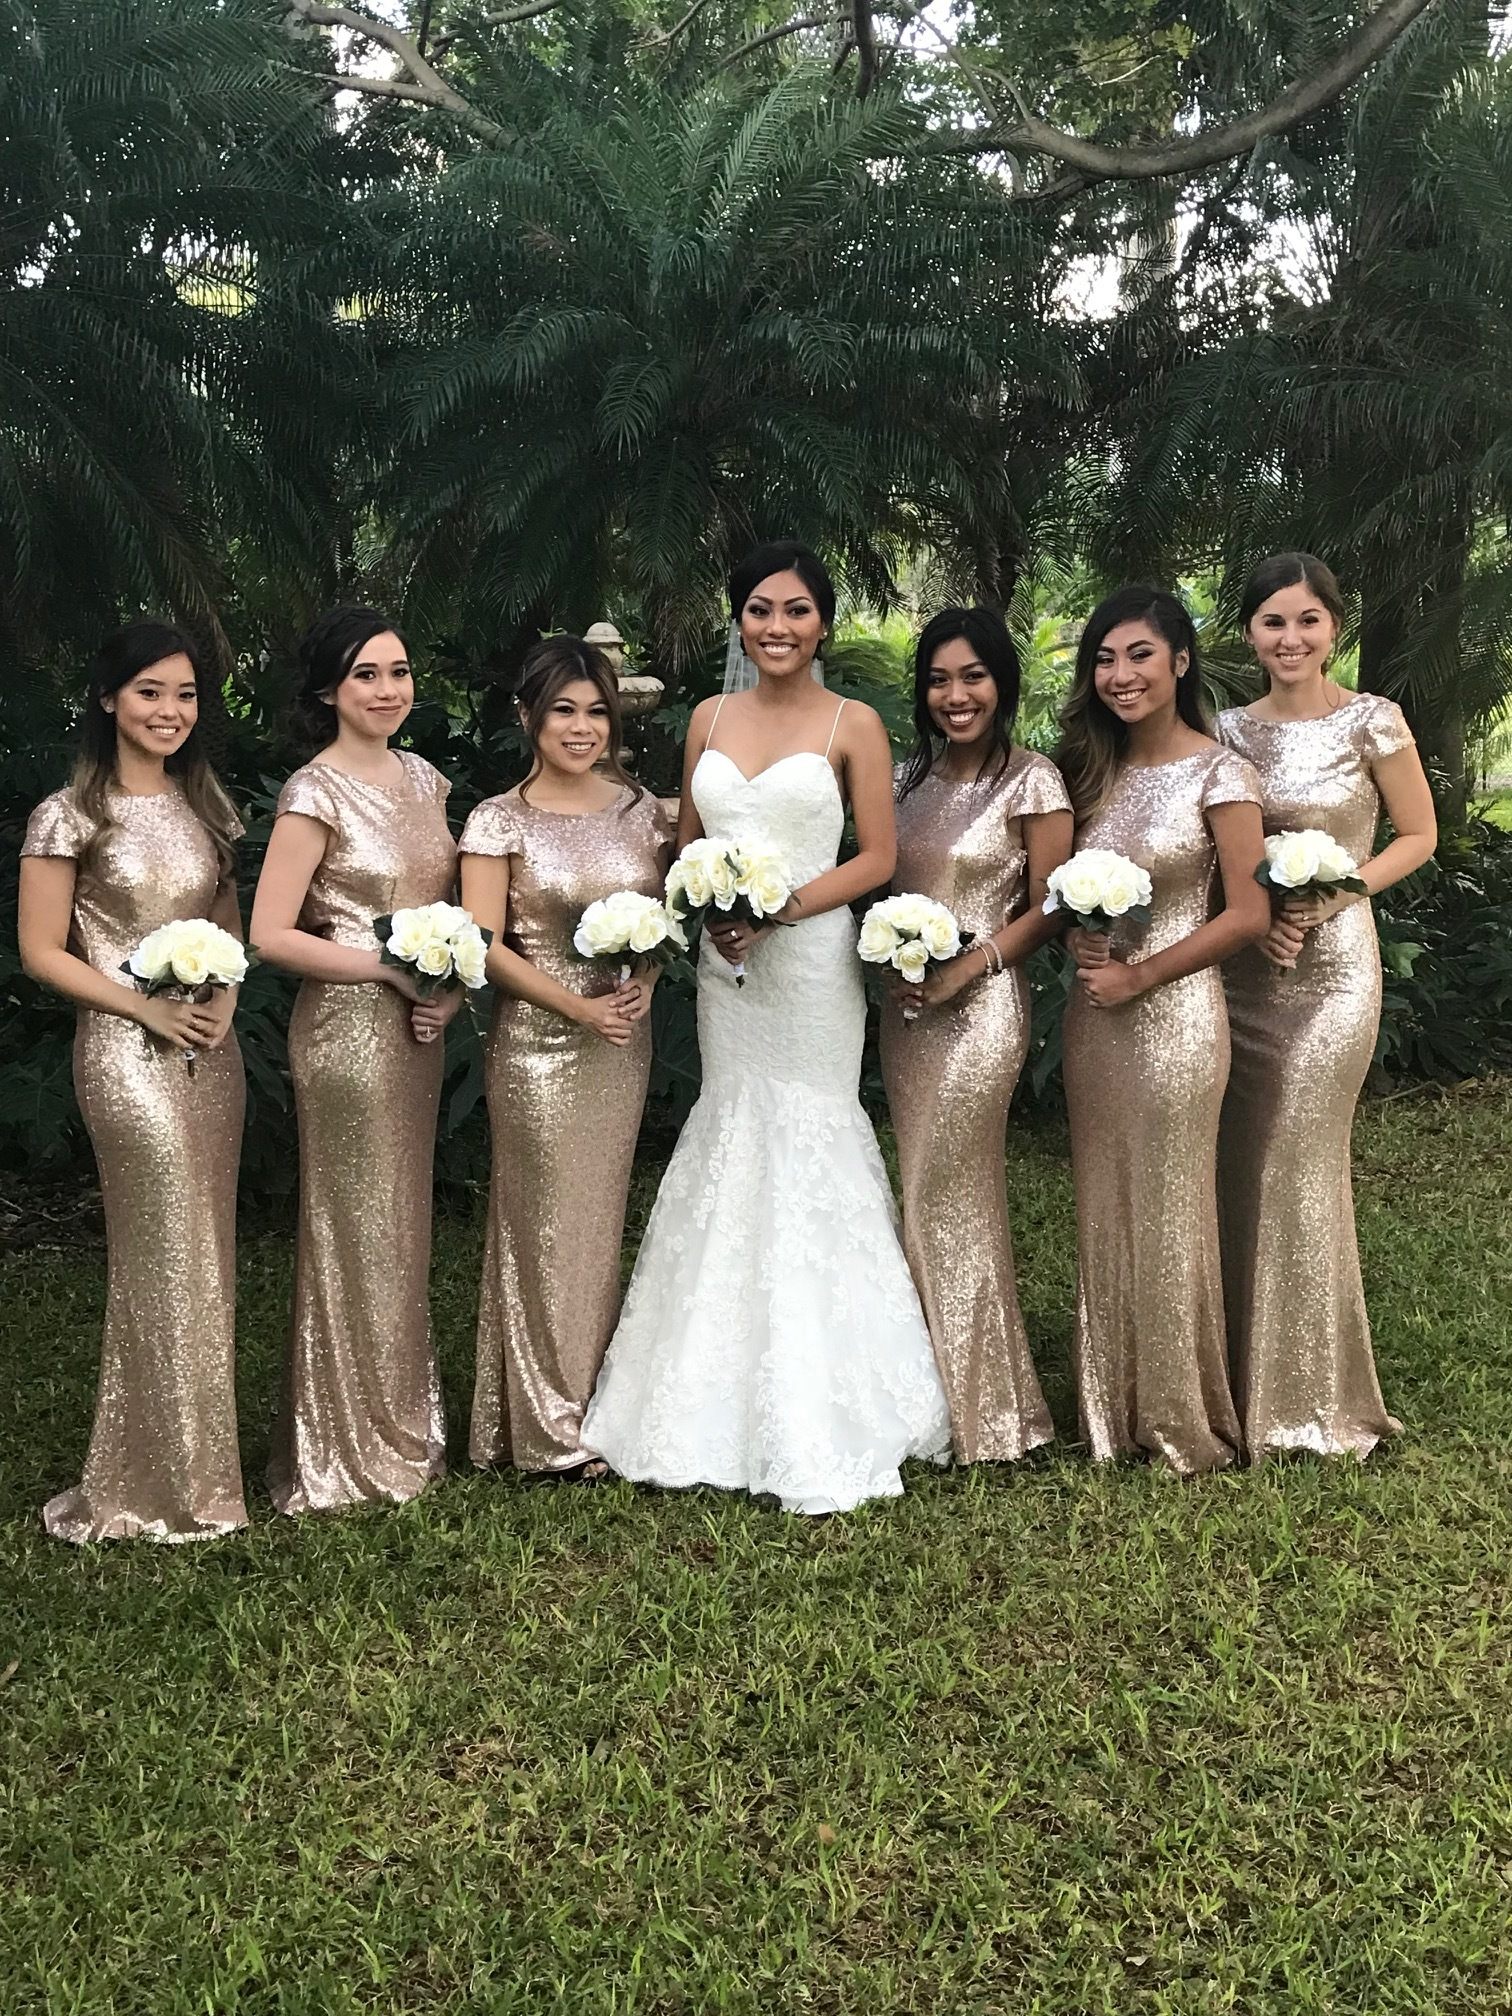 Joyce and her bridal party